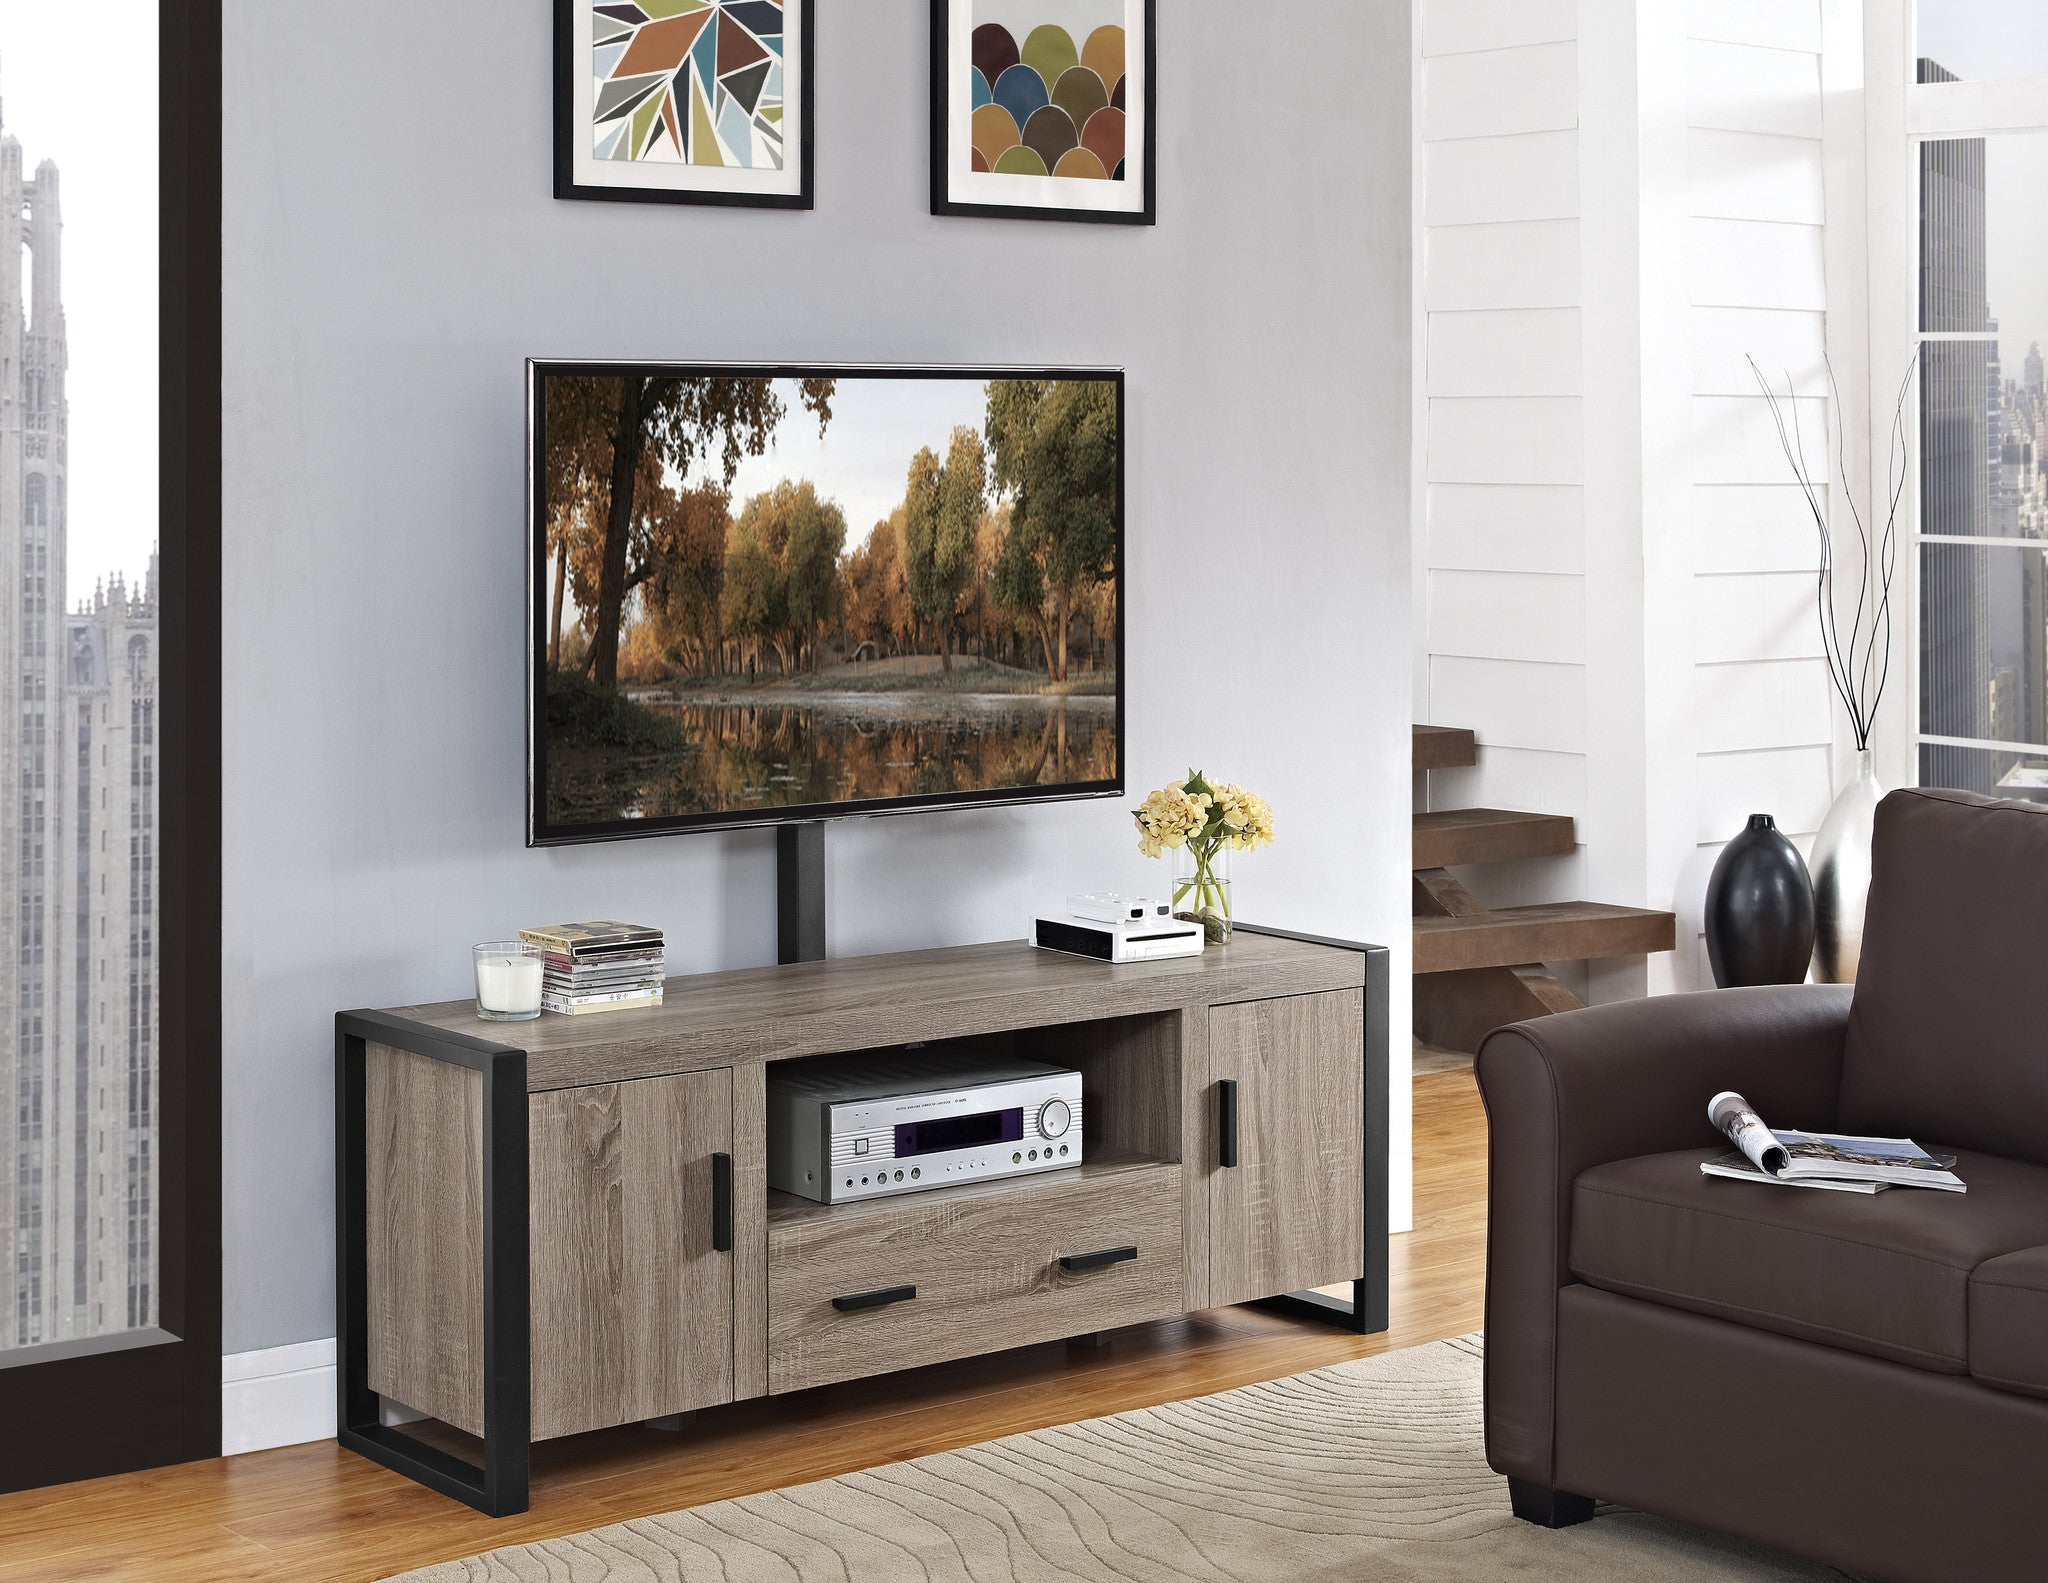 within brown home stand your polished entertainment to decor interior mount with drawer furniture three ultimate square center tv ideas glass shelf drawers and you fabulous give wooden the